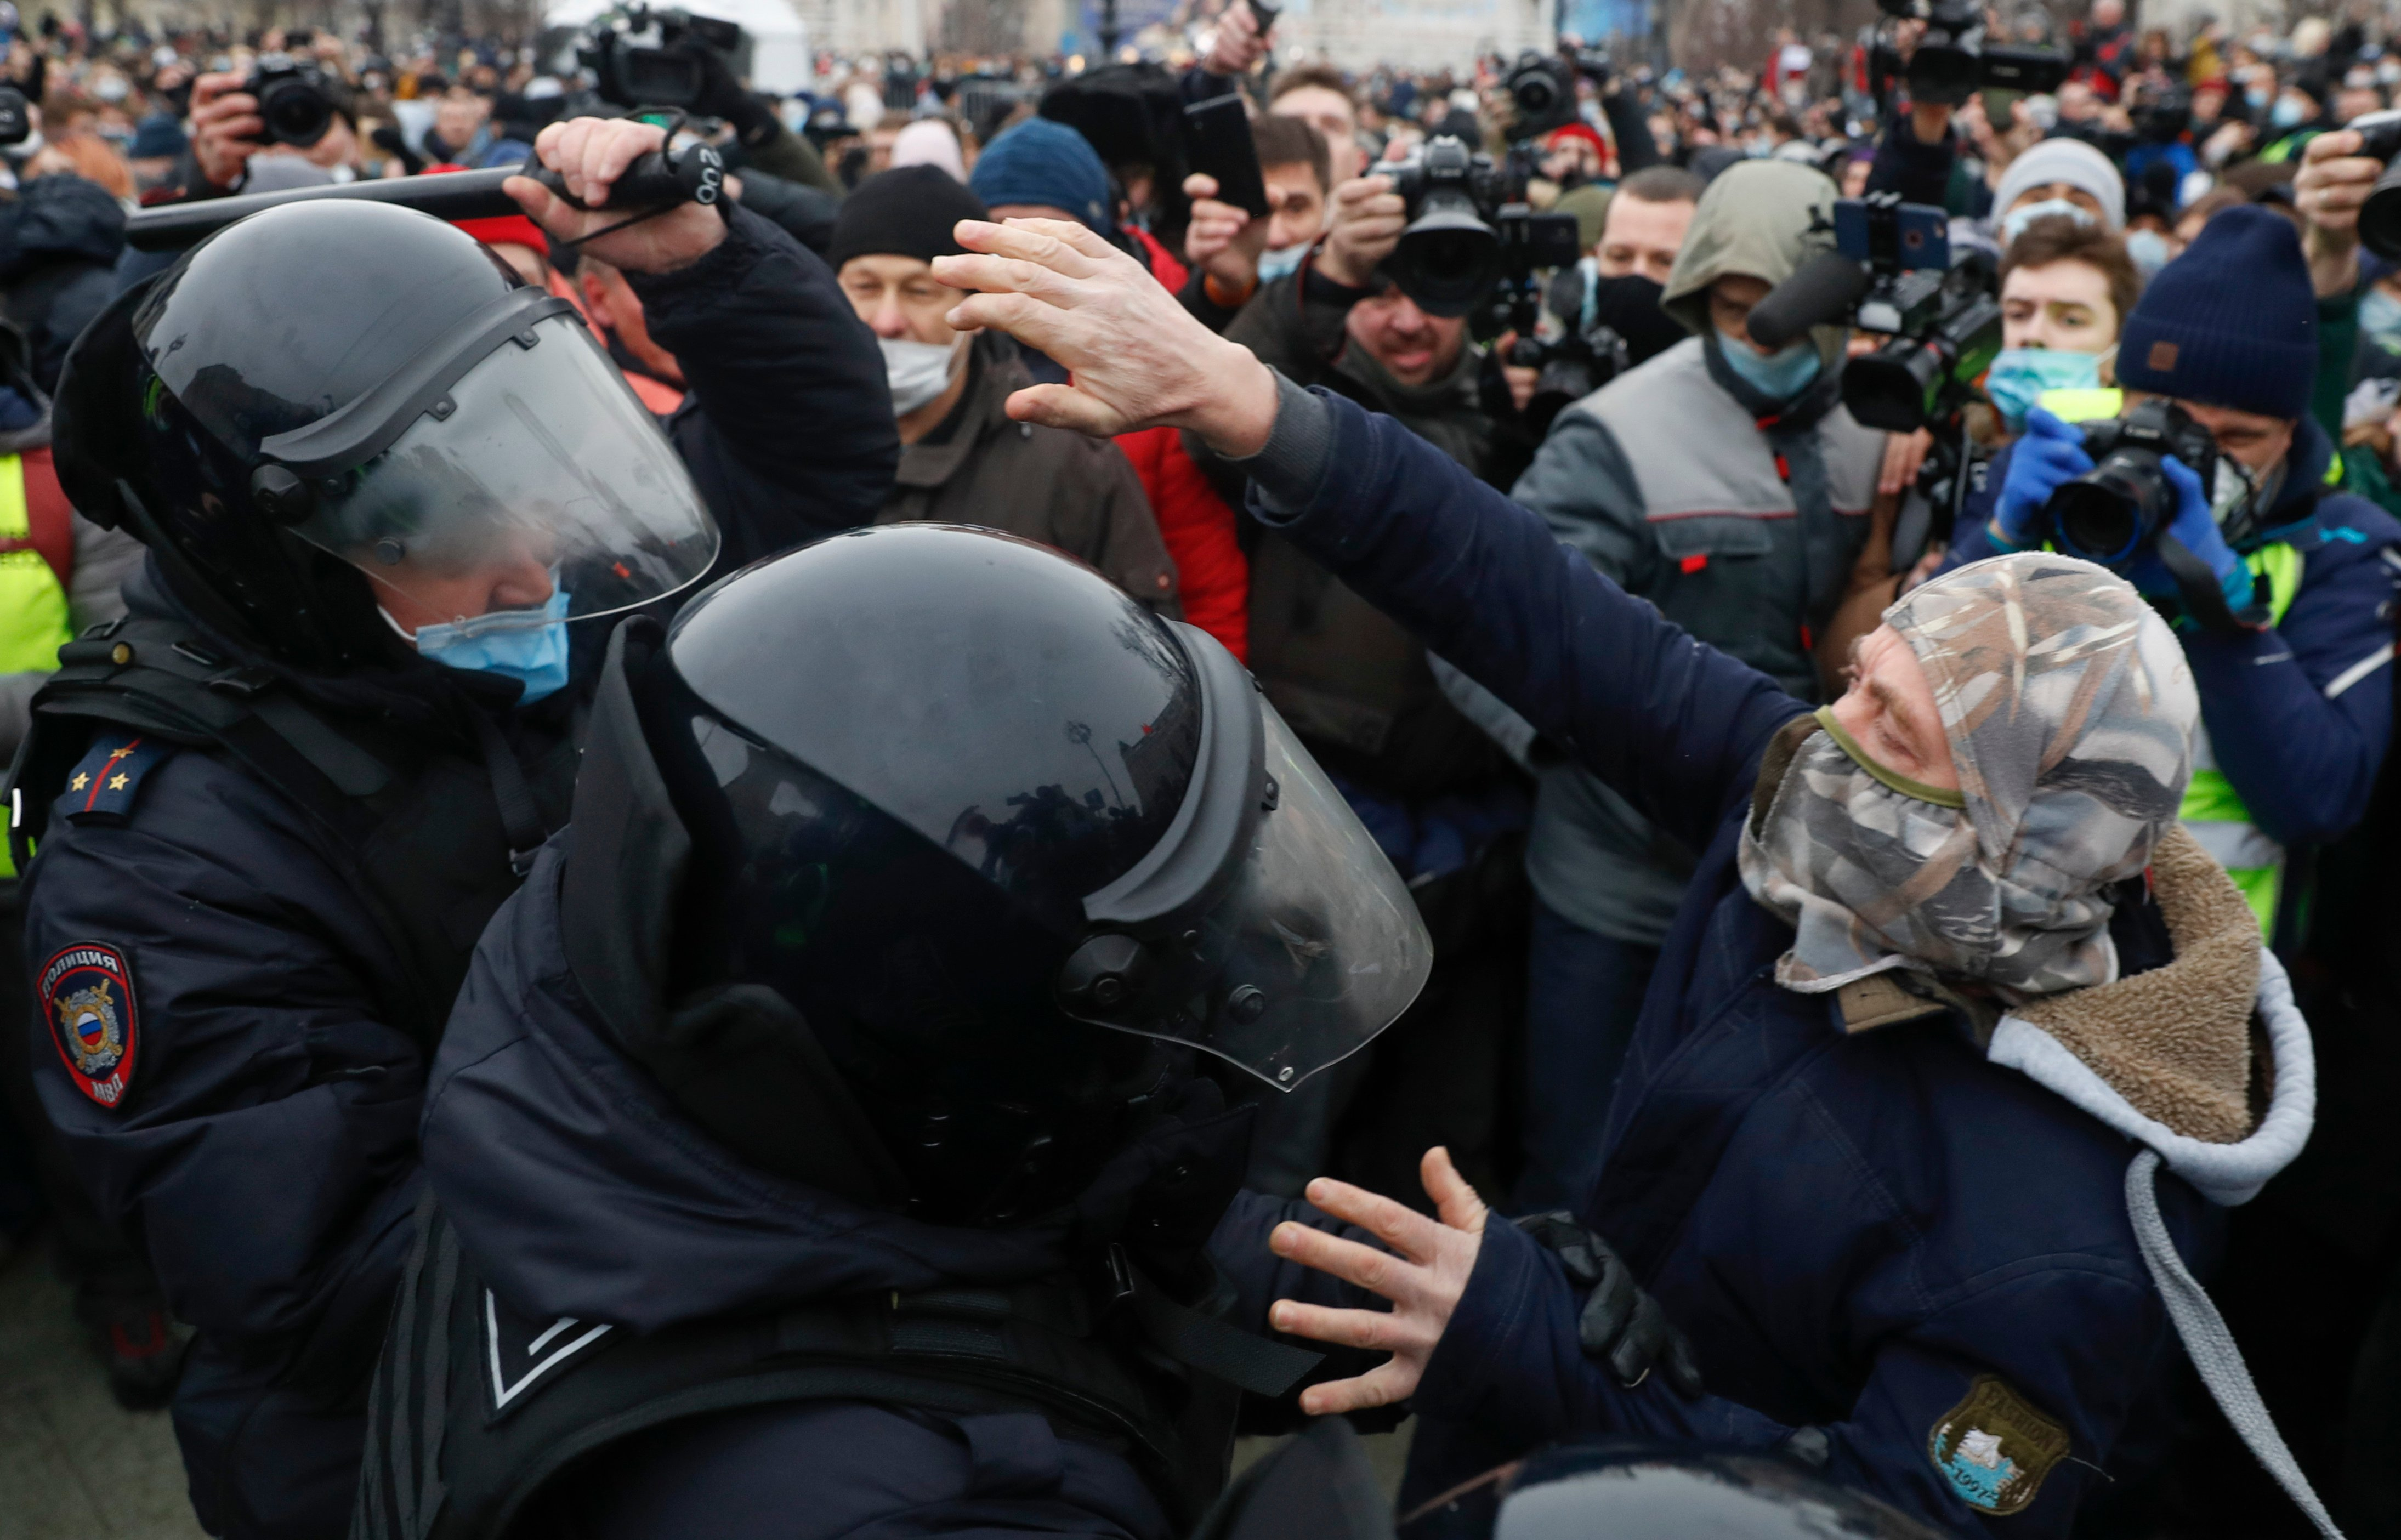 In pictures: Fury in cities across Russia over opposition leader's arrest